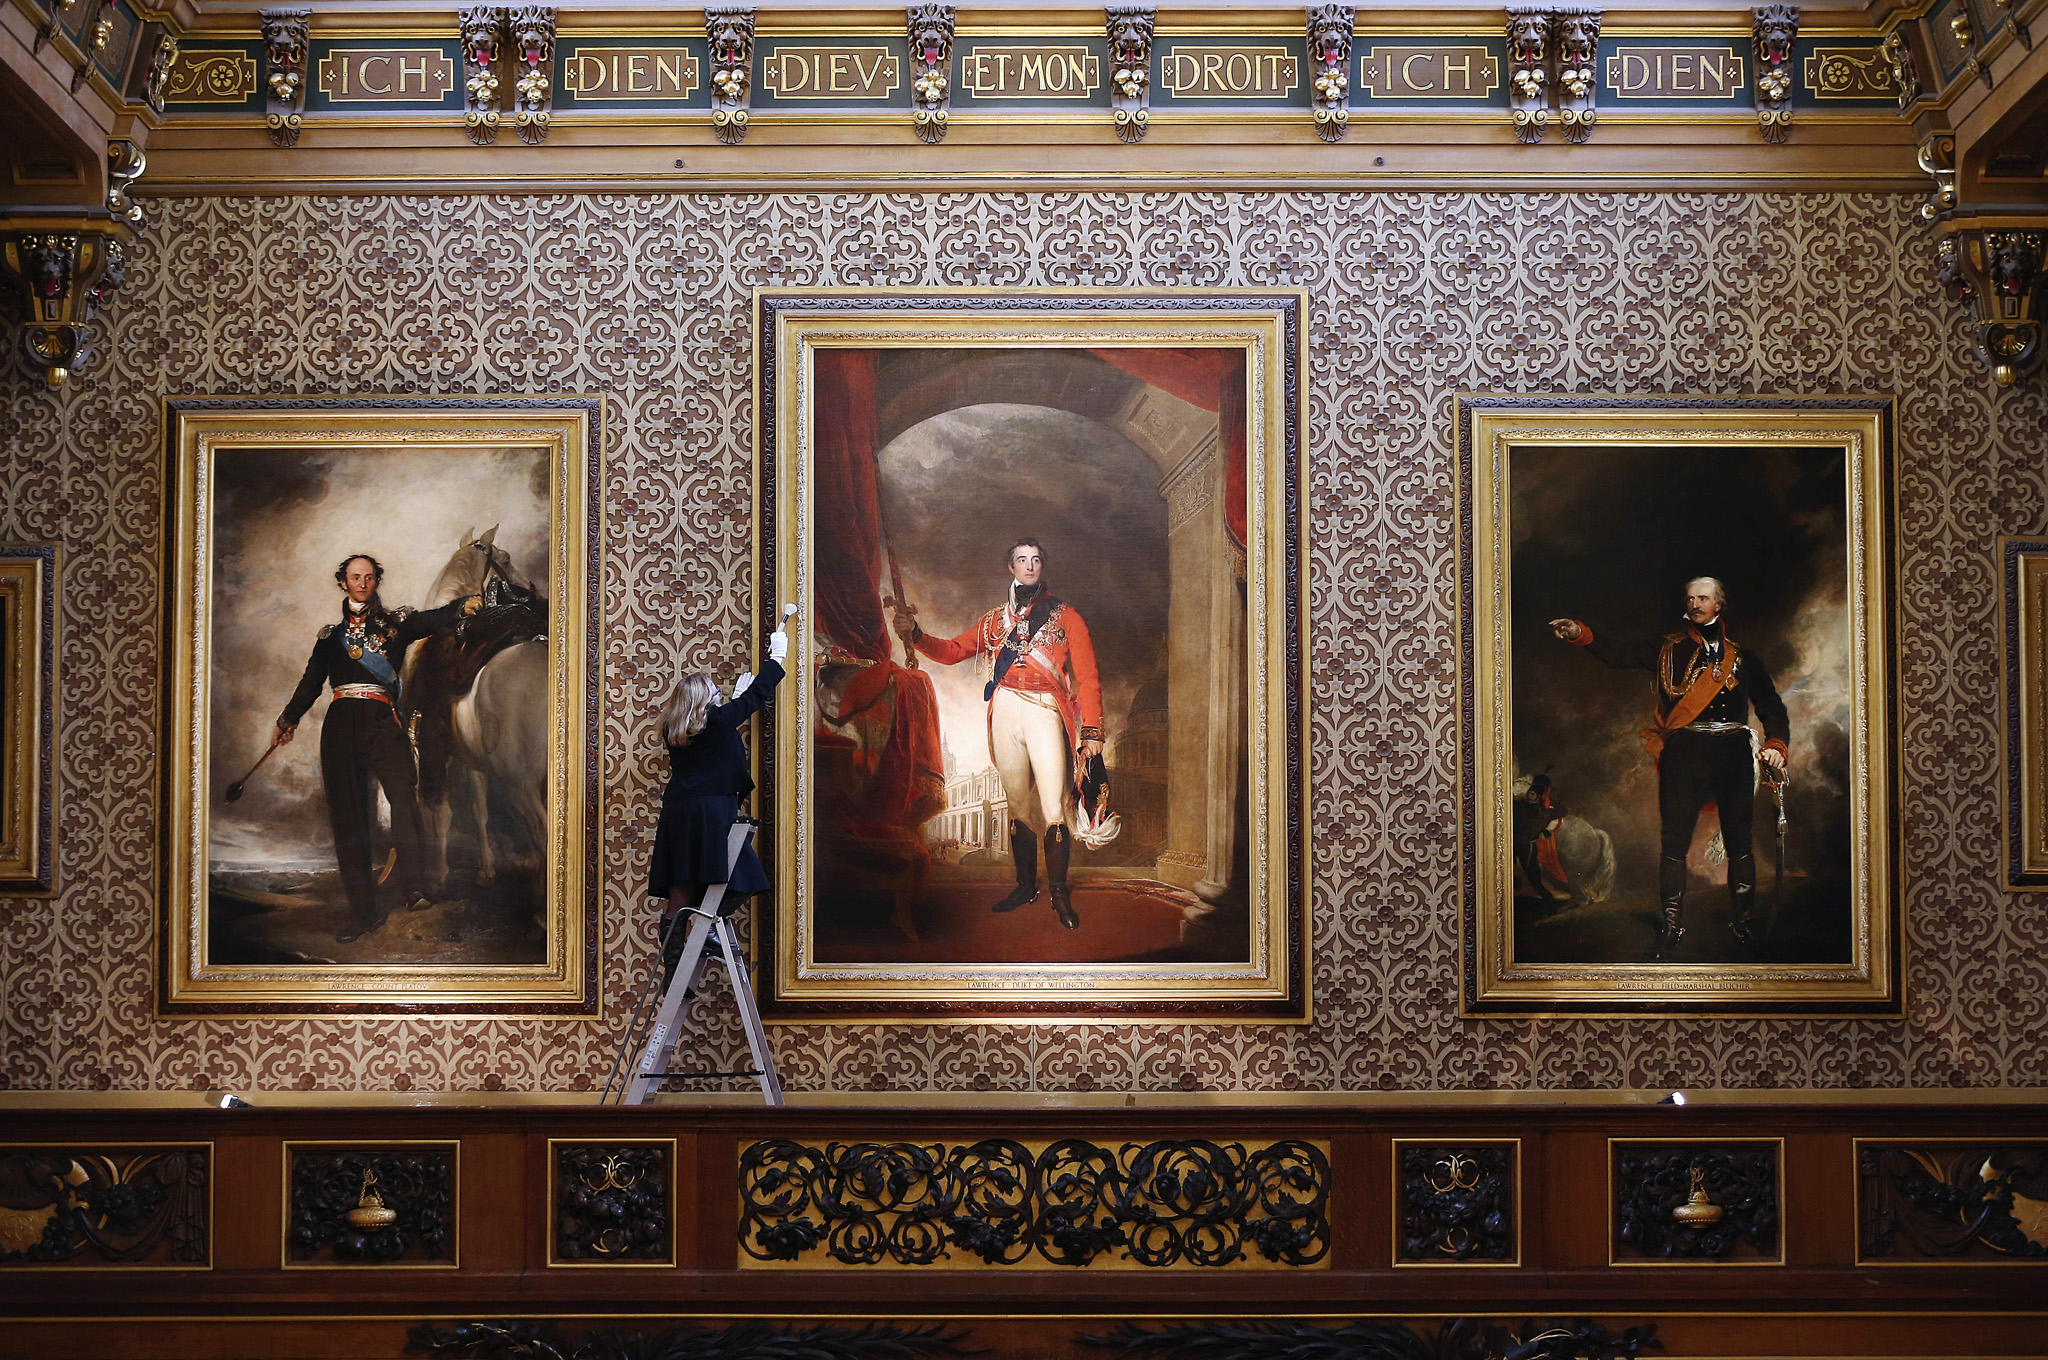 Press preview for Waterloo at Windsor: 1815-2015 Exhibition...WINDSOR, ENGLAND - JANUARY 28: A member of the Royal Collection staff poses besides a portrait of the Duke of Wellington in the Waterloo Chamber during a press preview for Waterloo at Windsor: 1815-2015 Exhibition at Windsor Castle on January 28, 2015 in Windsor, England. Paintings in the chamber will be on display with objects presented to George IV from the battle of Waterloo, which celebrates it's bicentennial this year. The exhibition opens at Windsor Castle from January 31, to January 13, 2016 as part of the 200th anniversary of the Battle of Waterloo celebrations.  (Photo by Dan Kitwood/Getty Images)